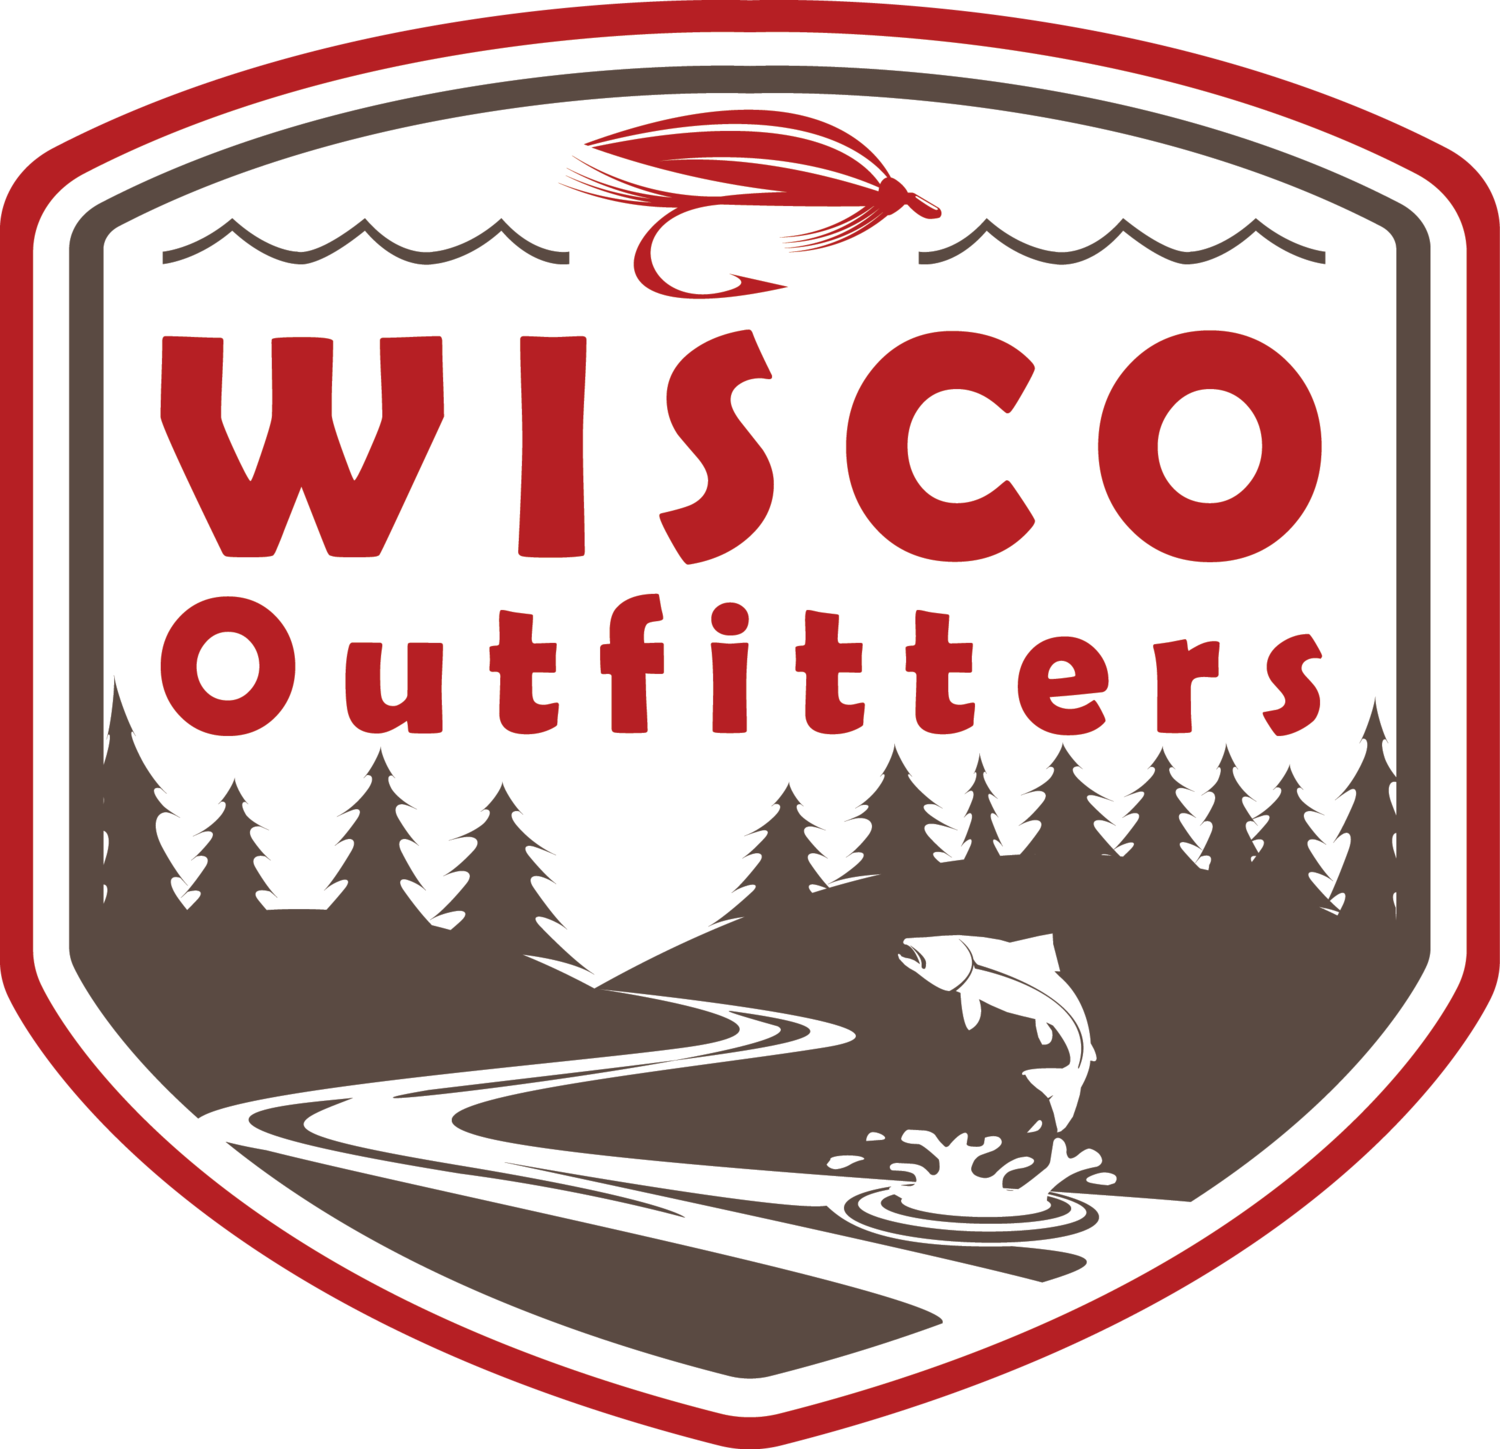 Wisco Outfitters